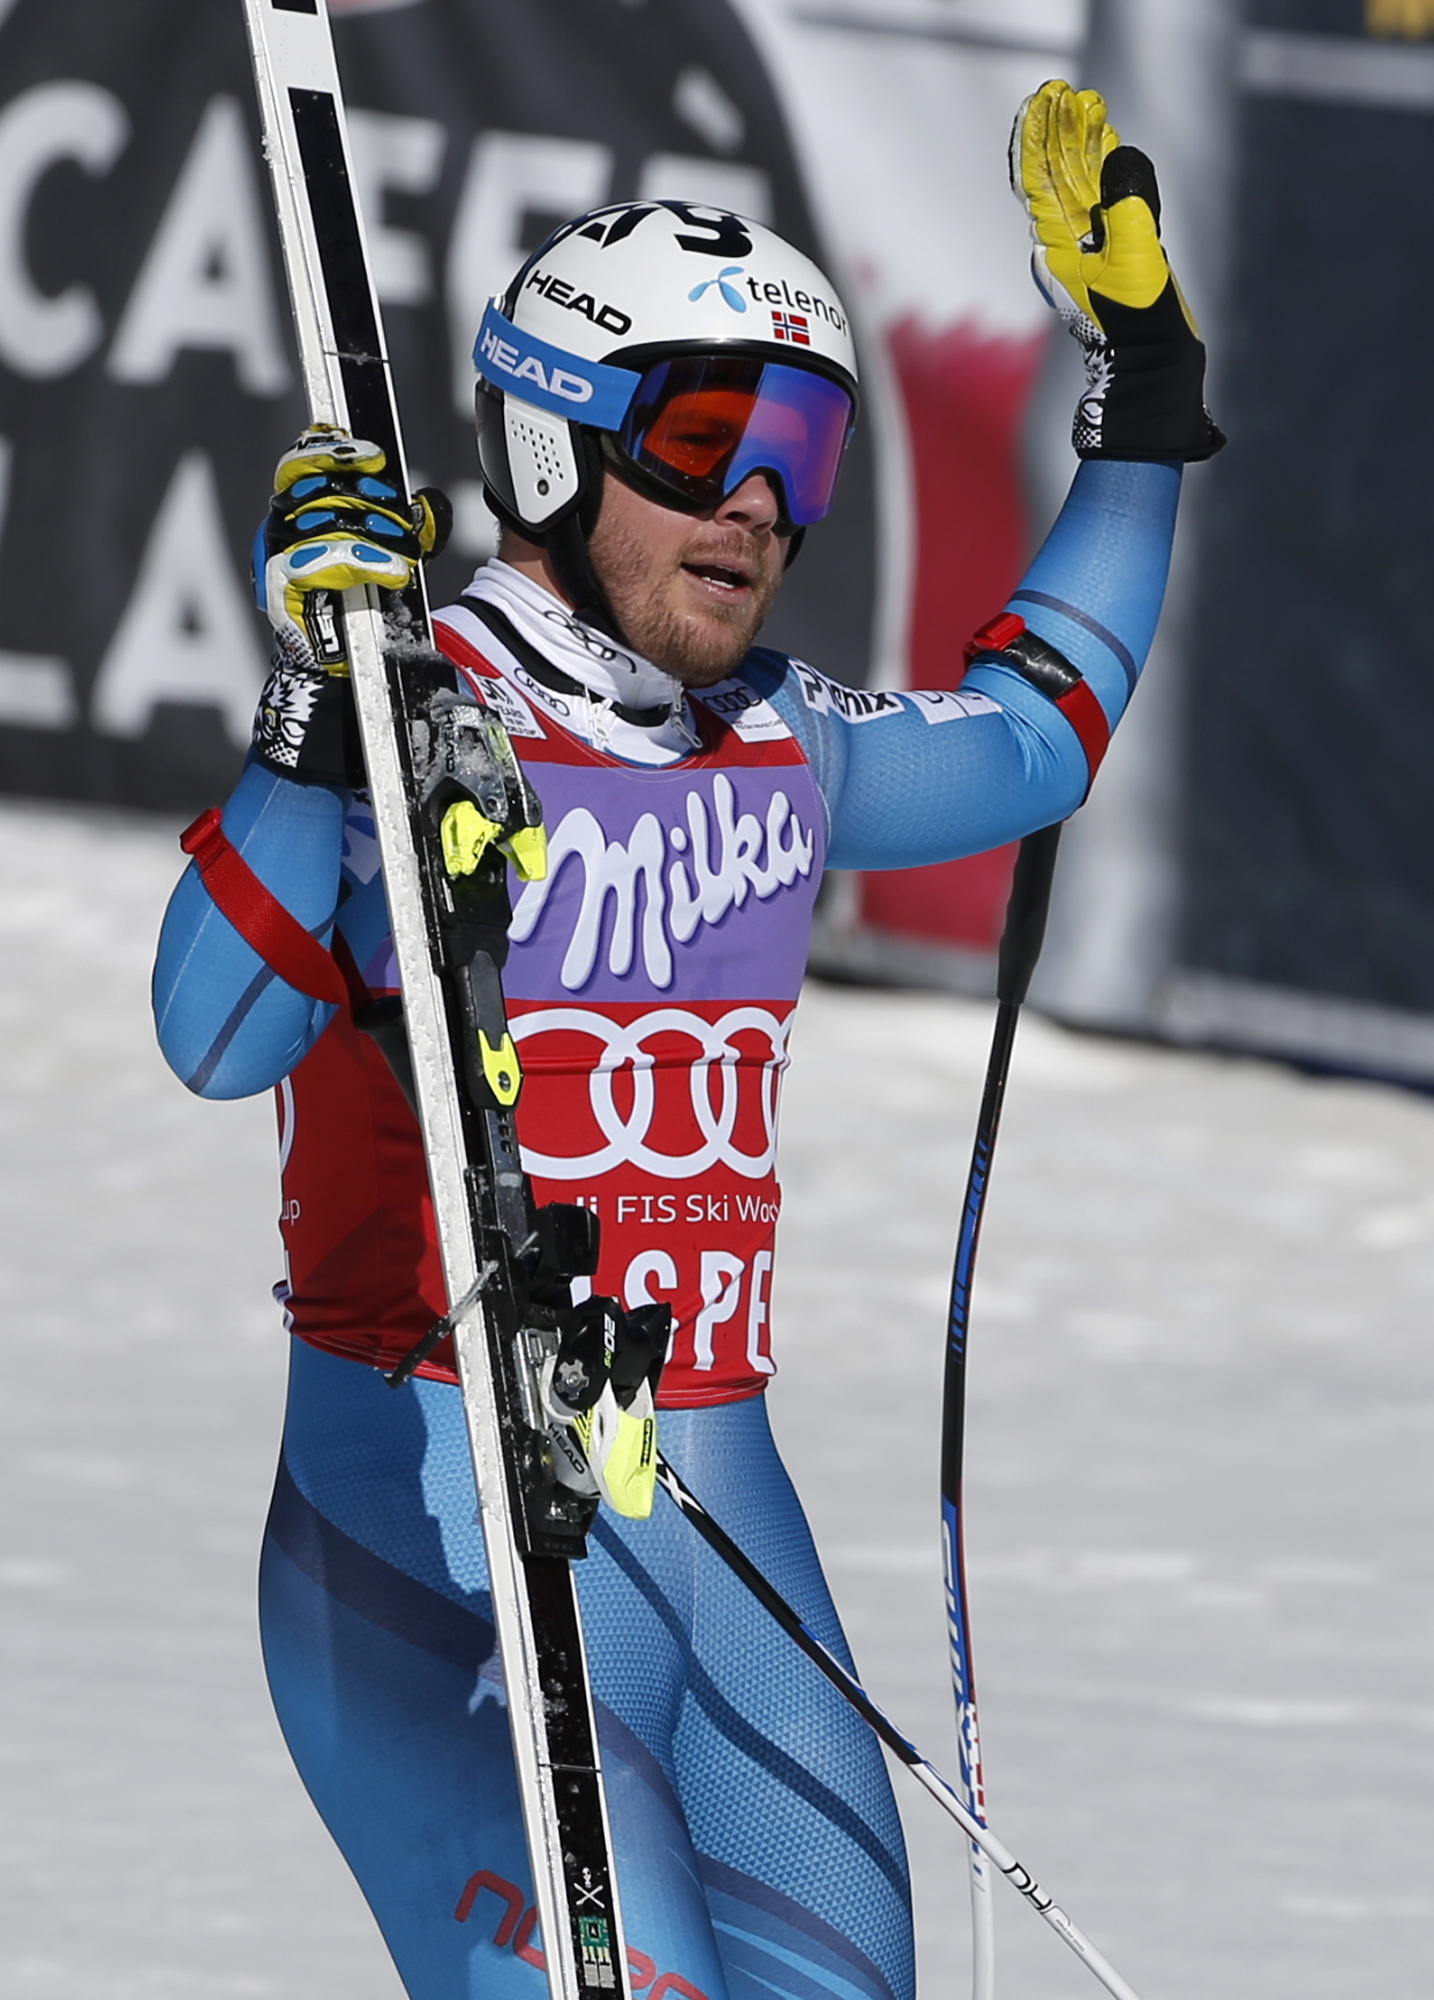 Norway's Kjetil Jansrud waves after a run at the men's World Cup super-G ski race Thursday, March 16, 2017, in Aspen, Colo. (AP Photo/Brennan Linsley)